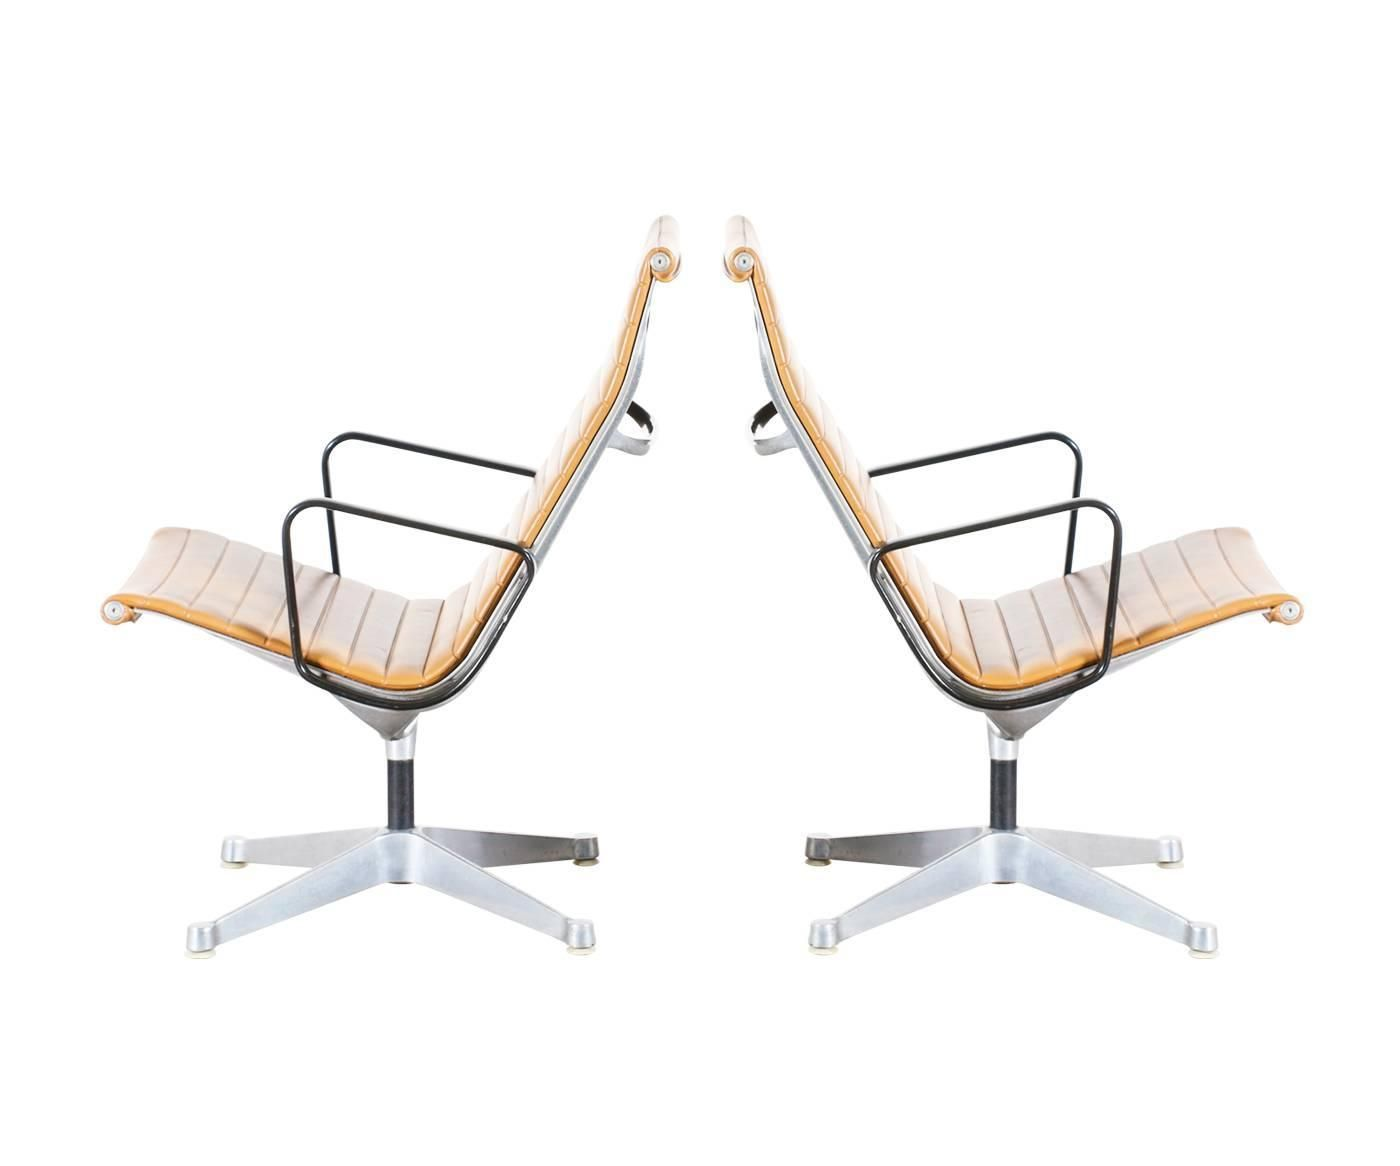 charles ray eames aluminum group tan color lounge chairs